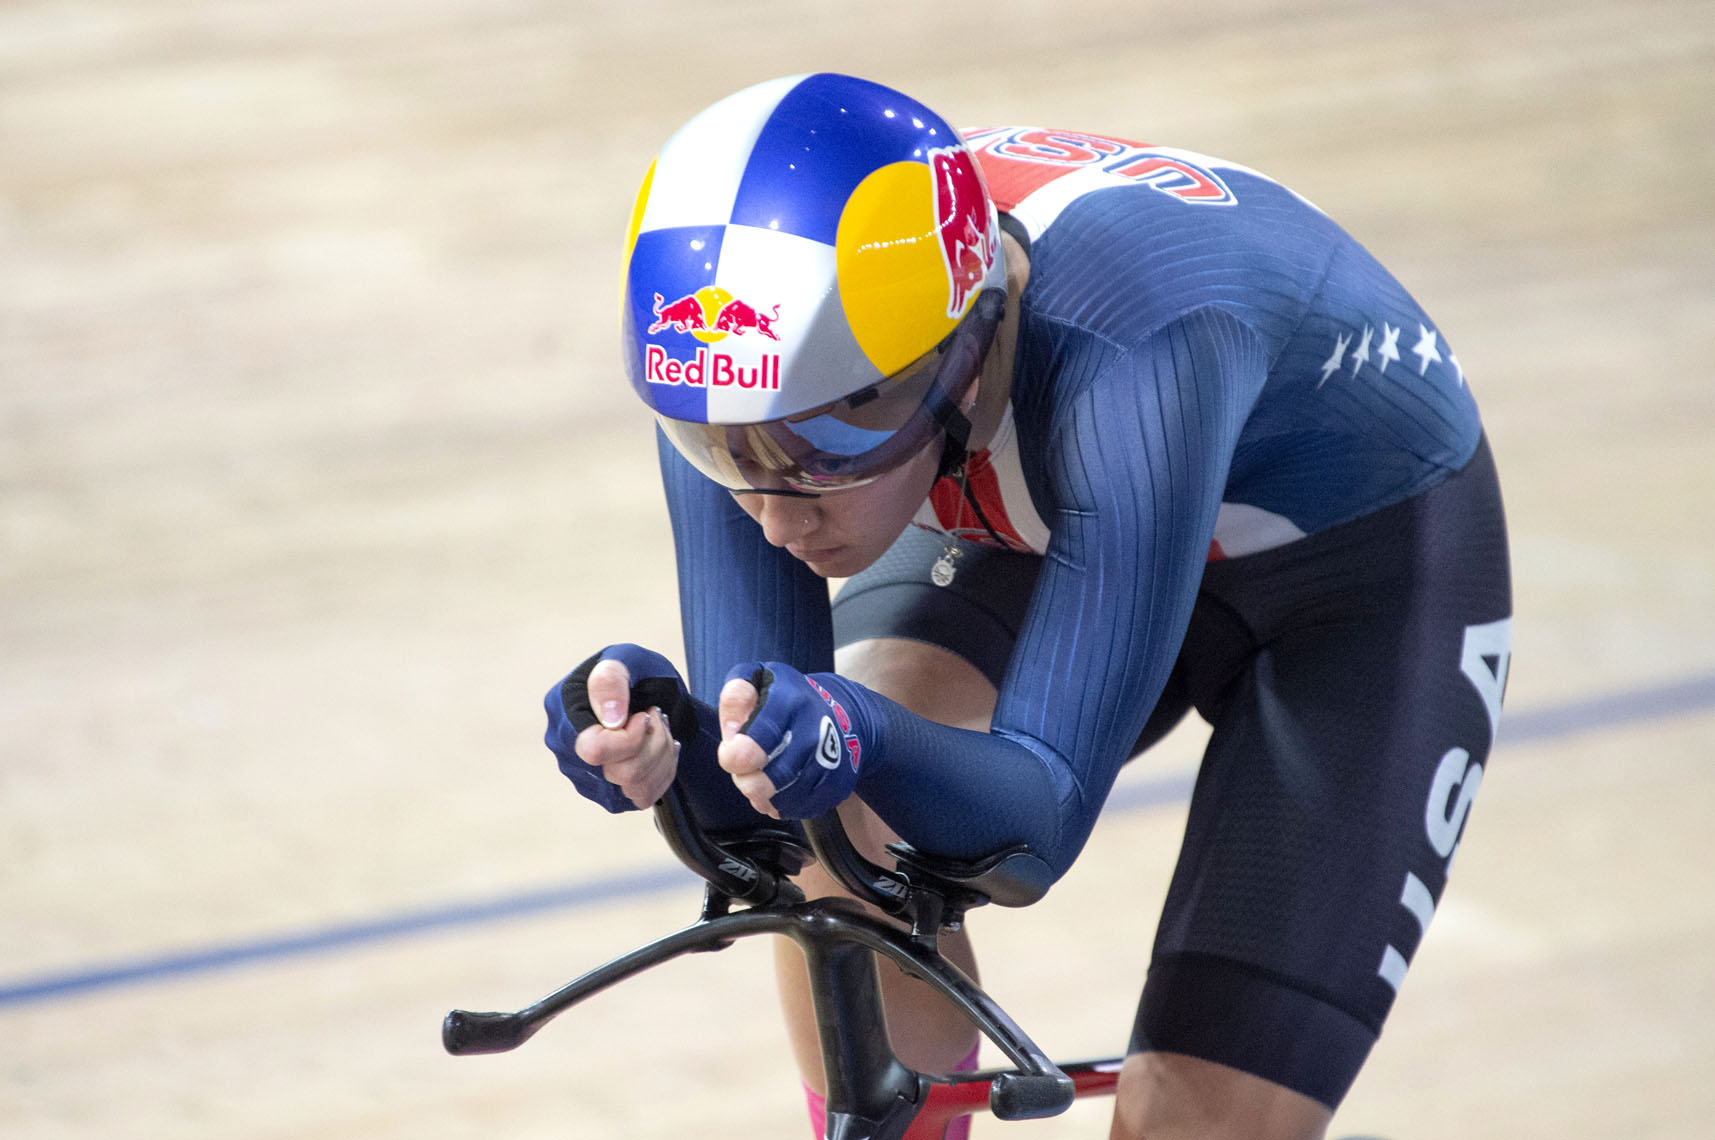 Chloe Dygert, world record ride in individual pursuit.